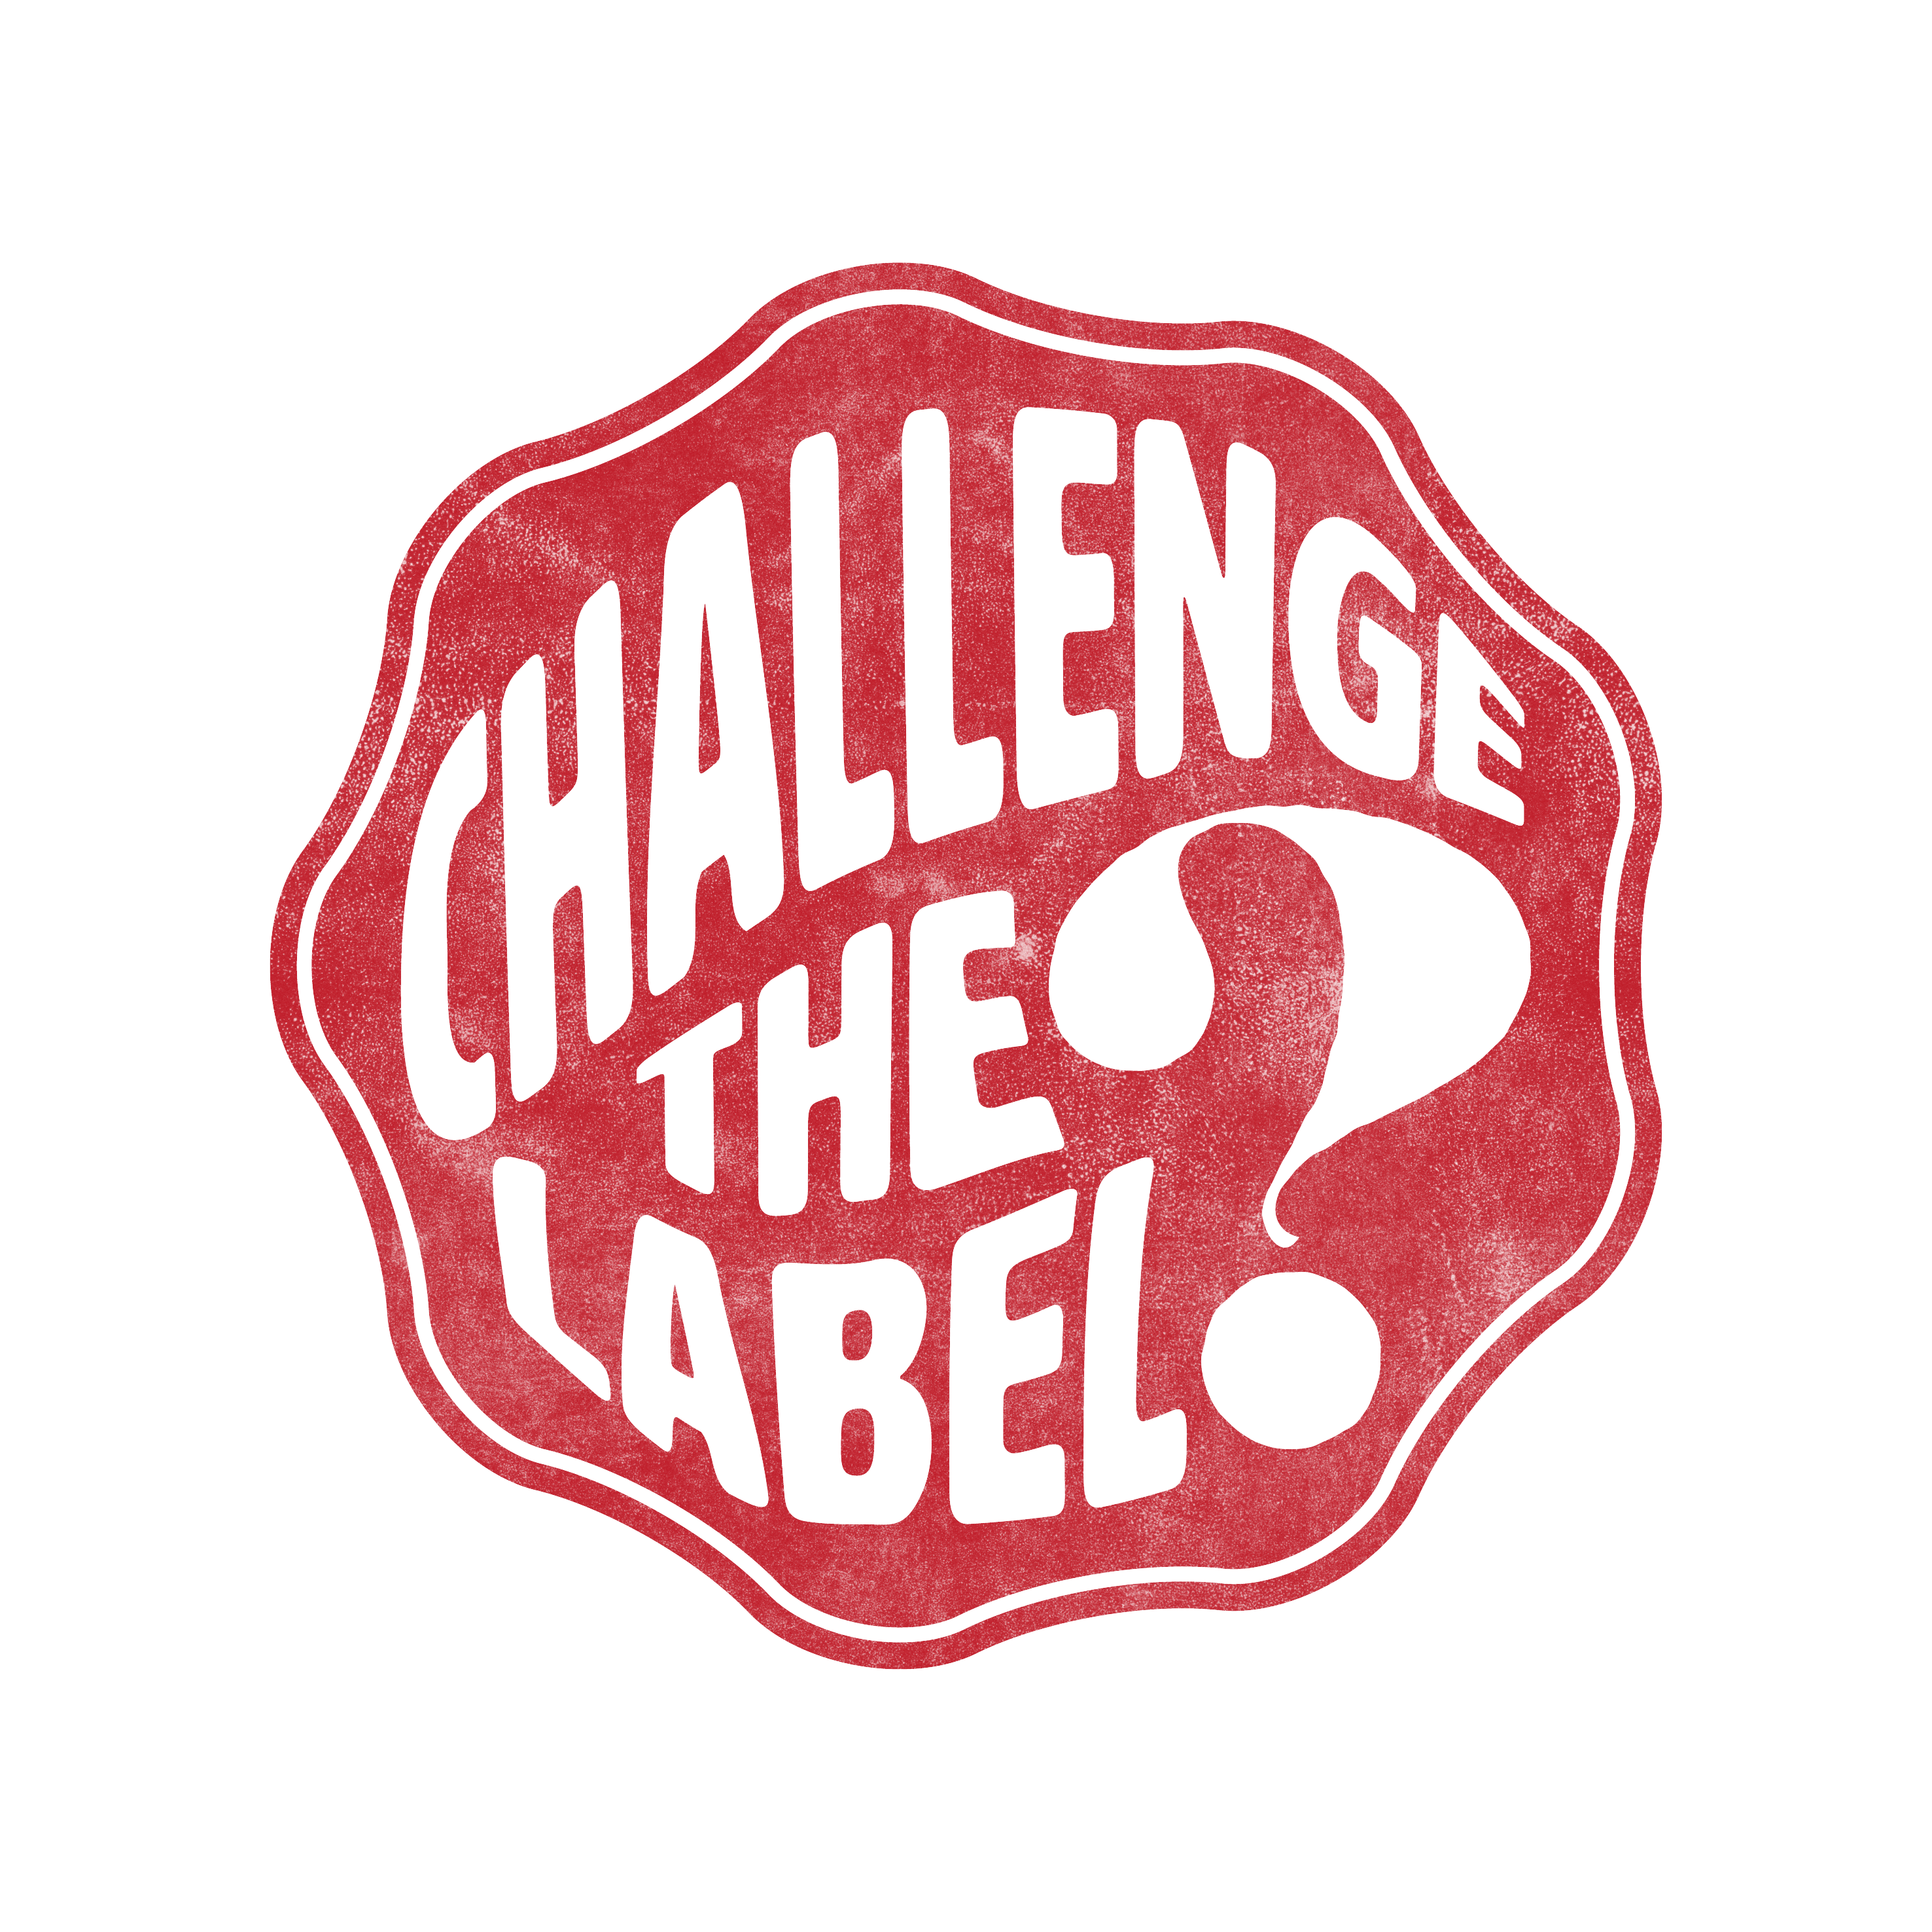 Challenge the label stamp